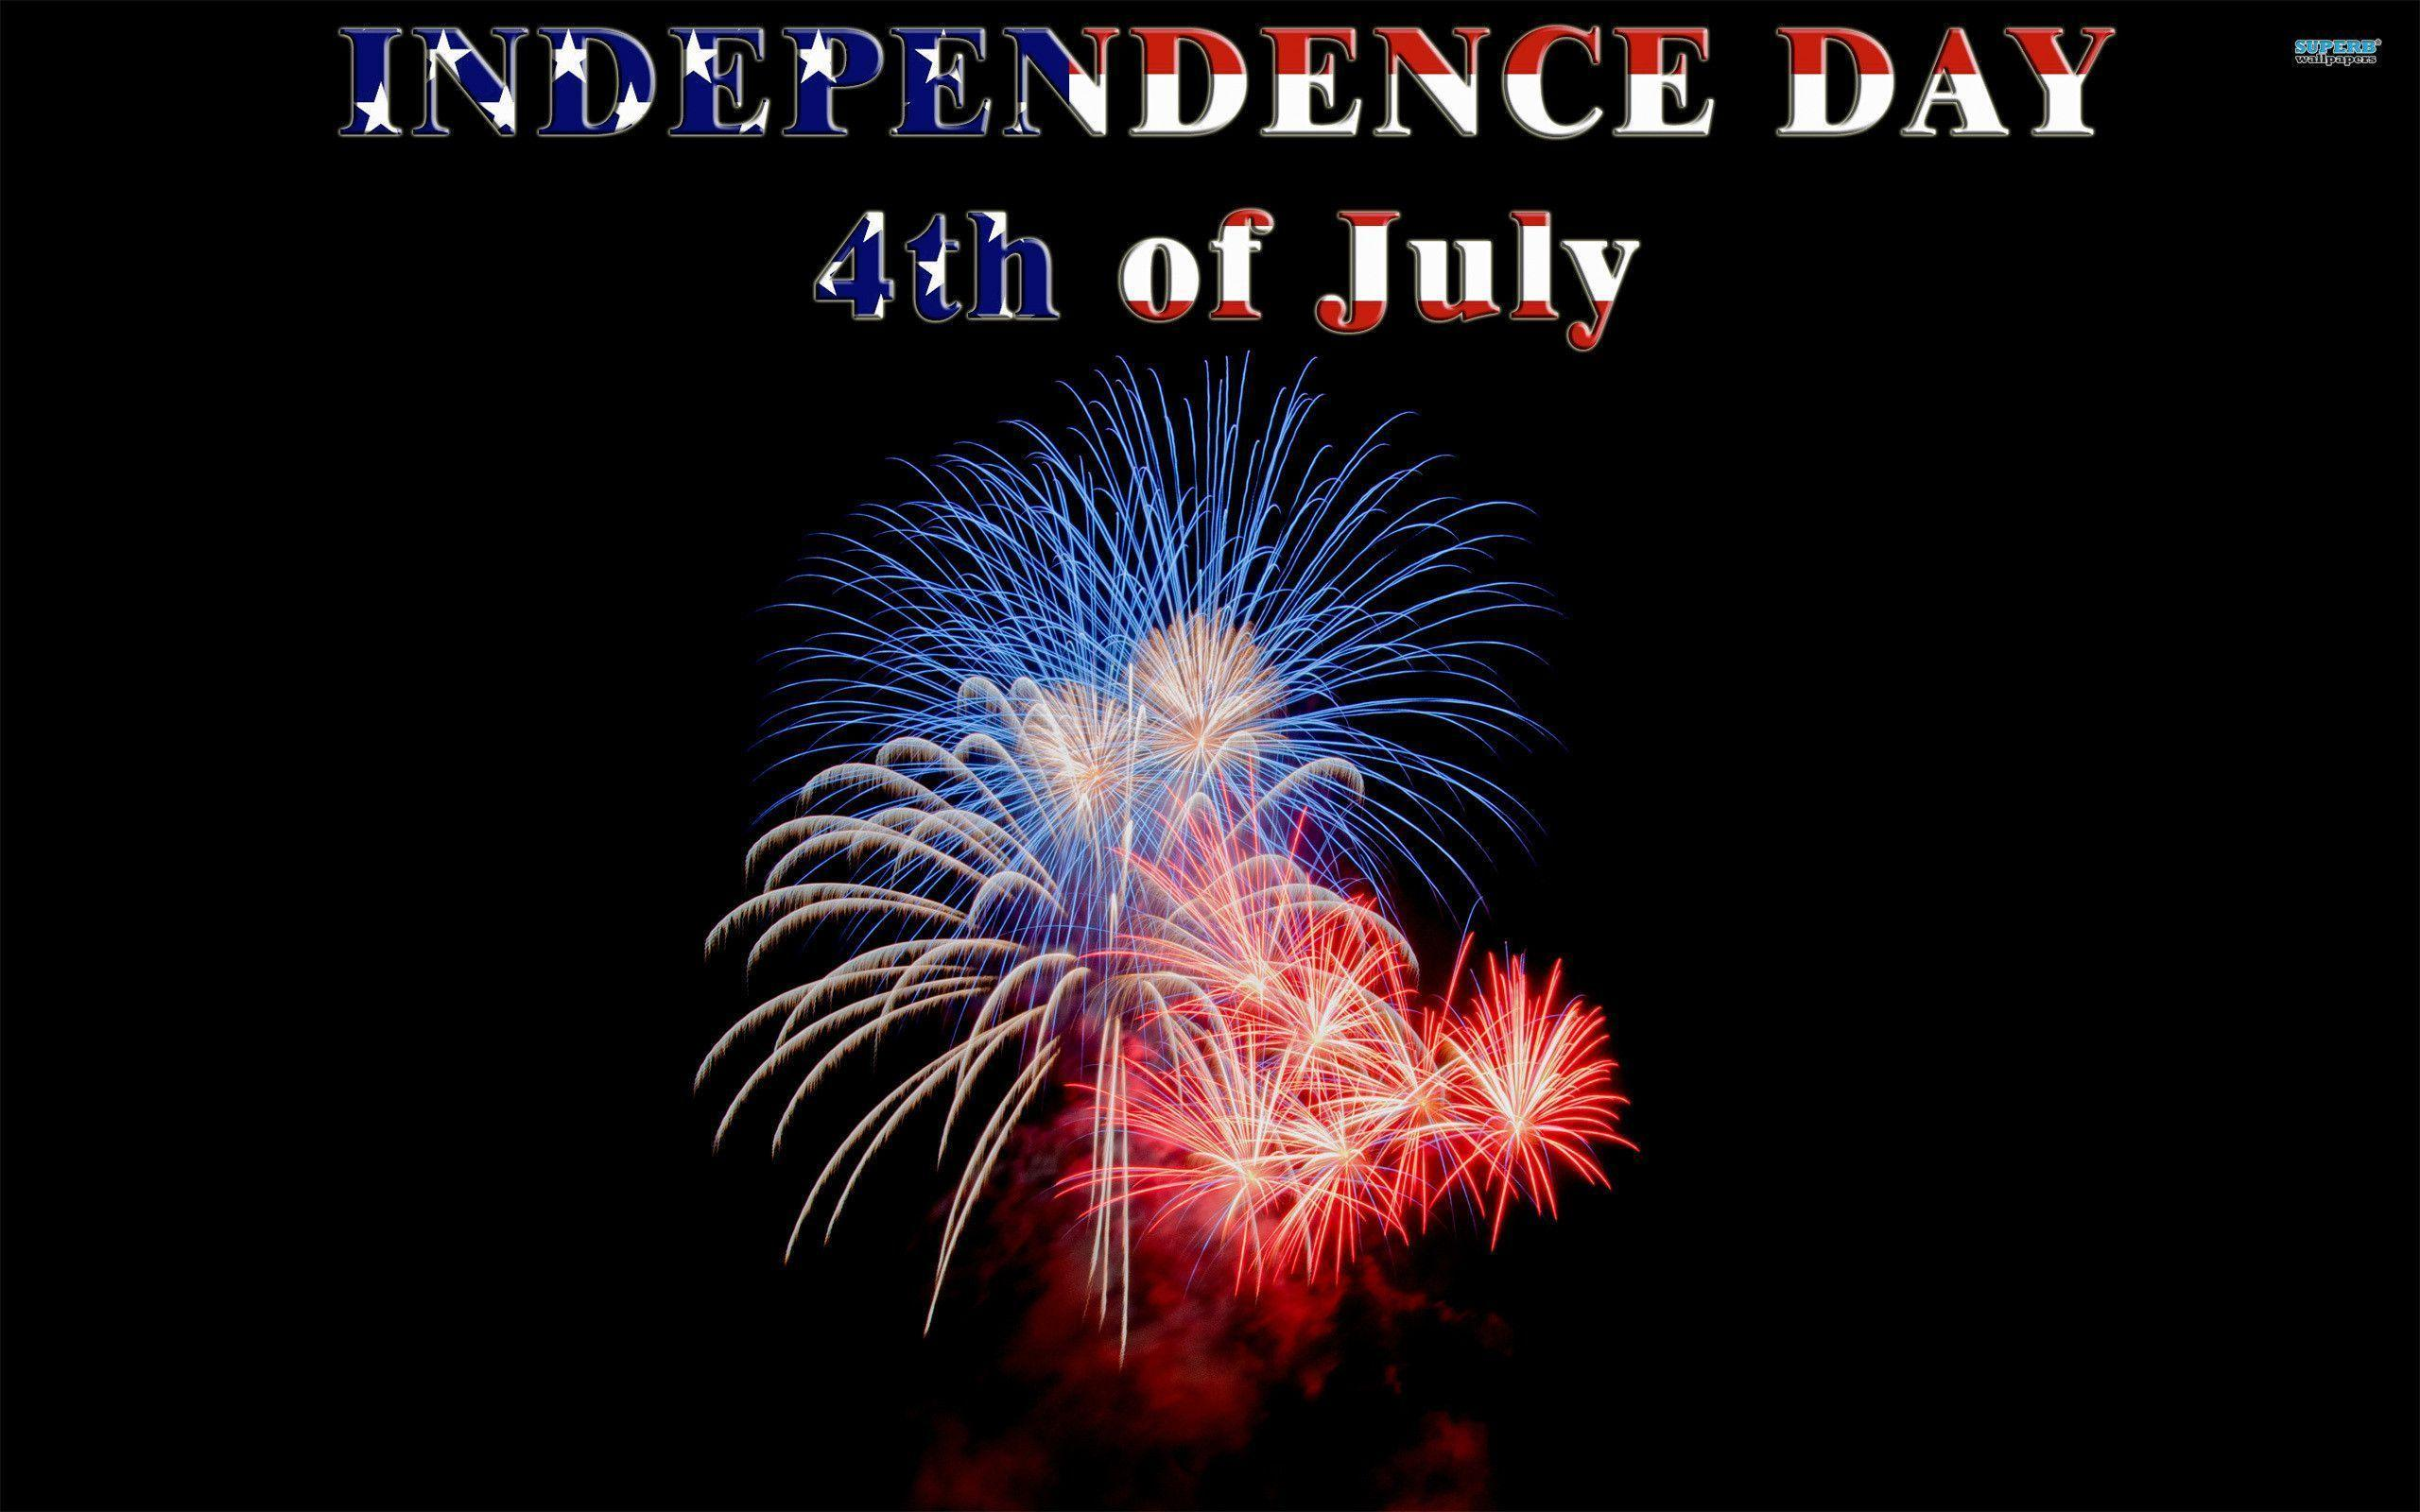 Independence Day 4th Of July HD Wallpaper #6079 Wallpaper | High ...